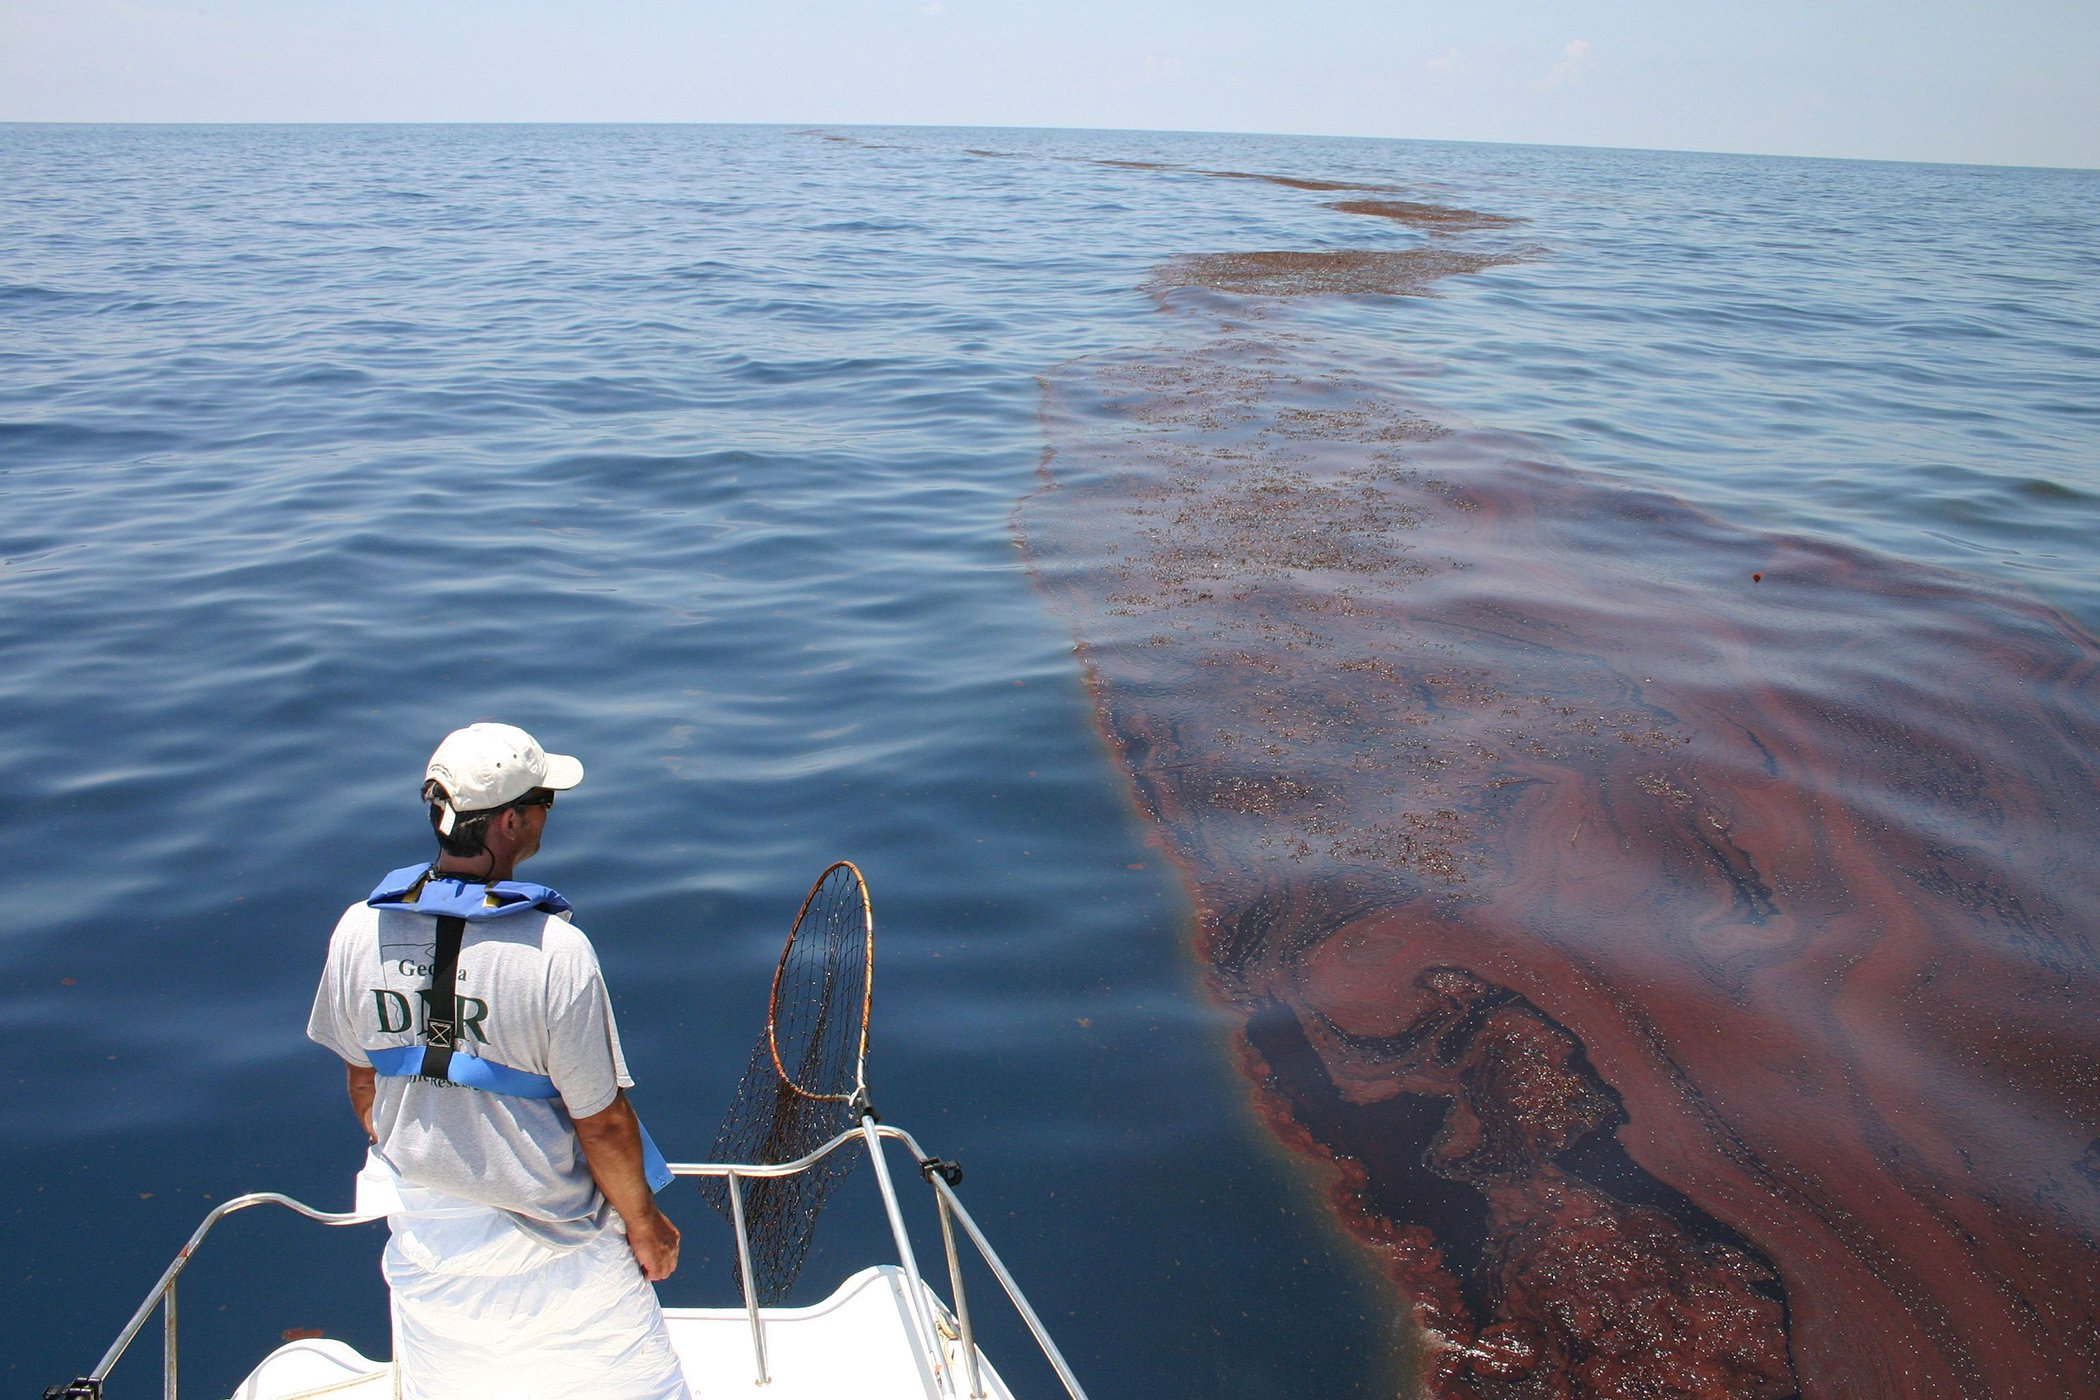 BP Deepwater Horizon Oil Spill NOAA.jpg